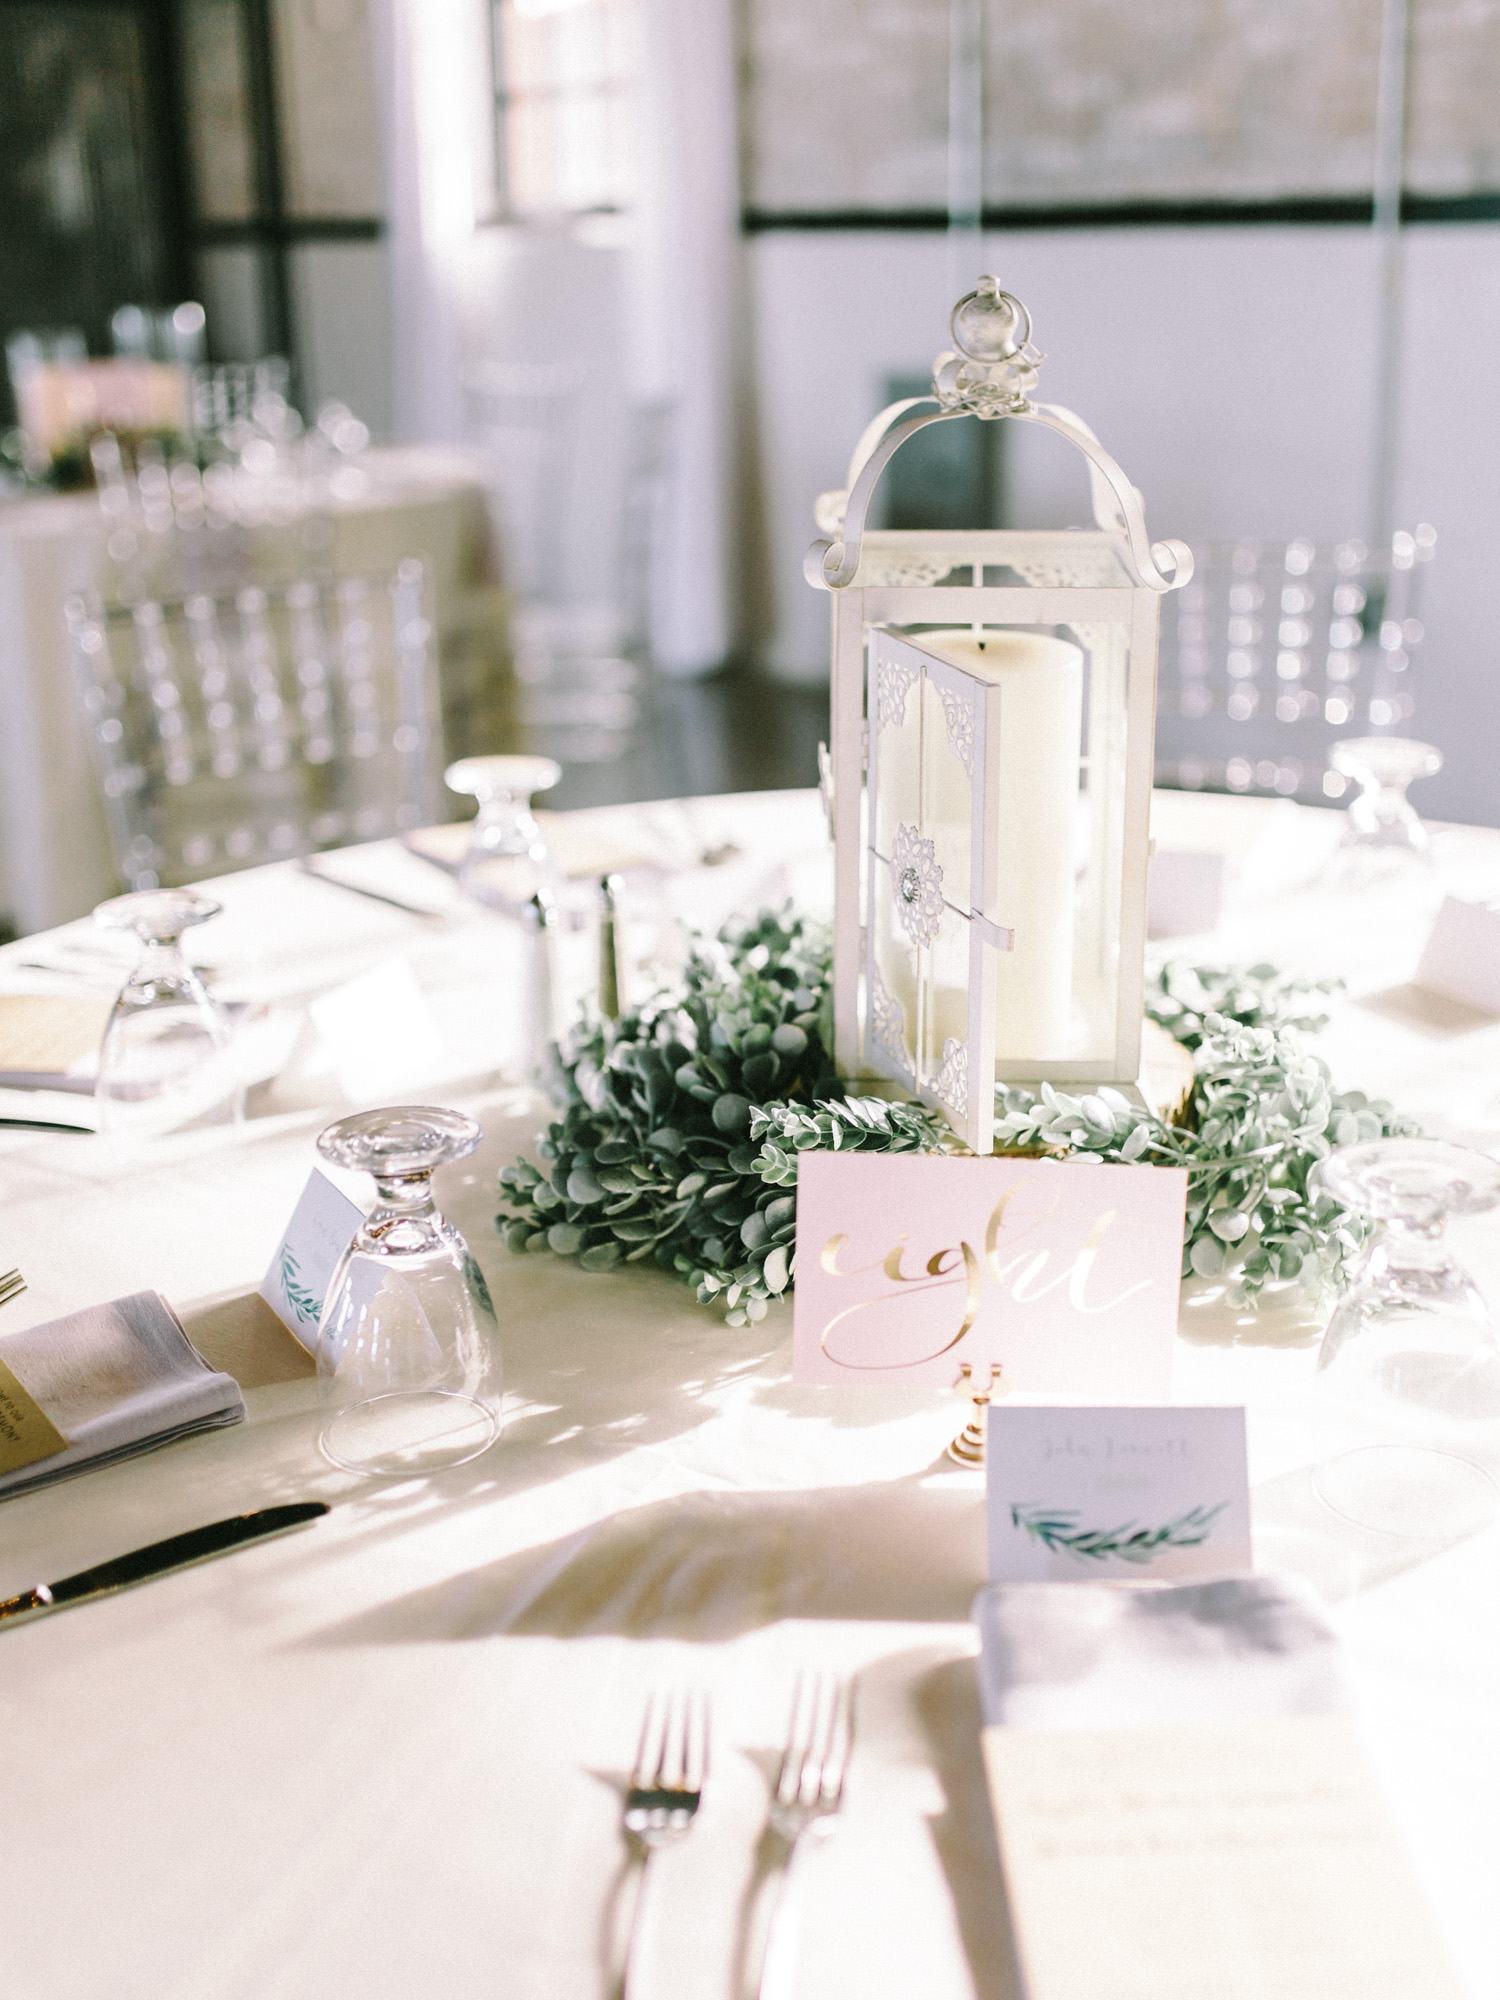 Sunlight falls on an ethereal wedding reception table with a white lantern centerpiece, greenery, and calligraphy table number in South Bend, Indiana